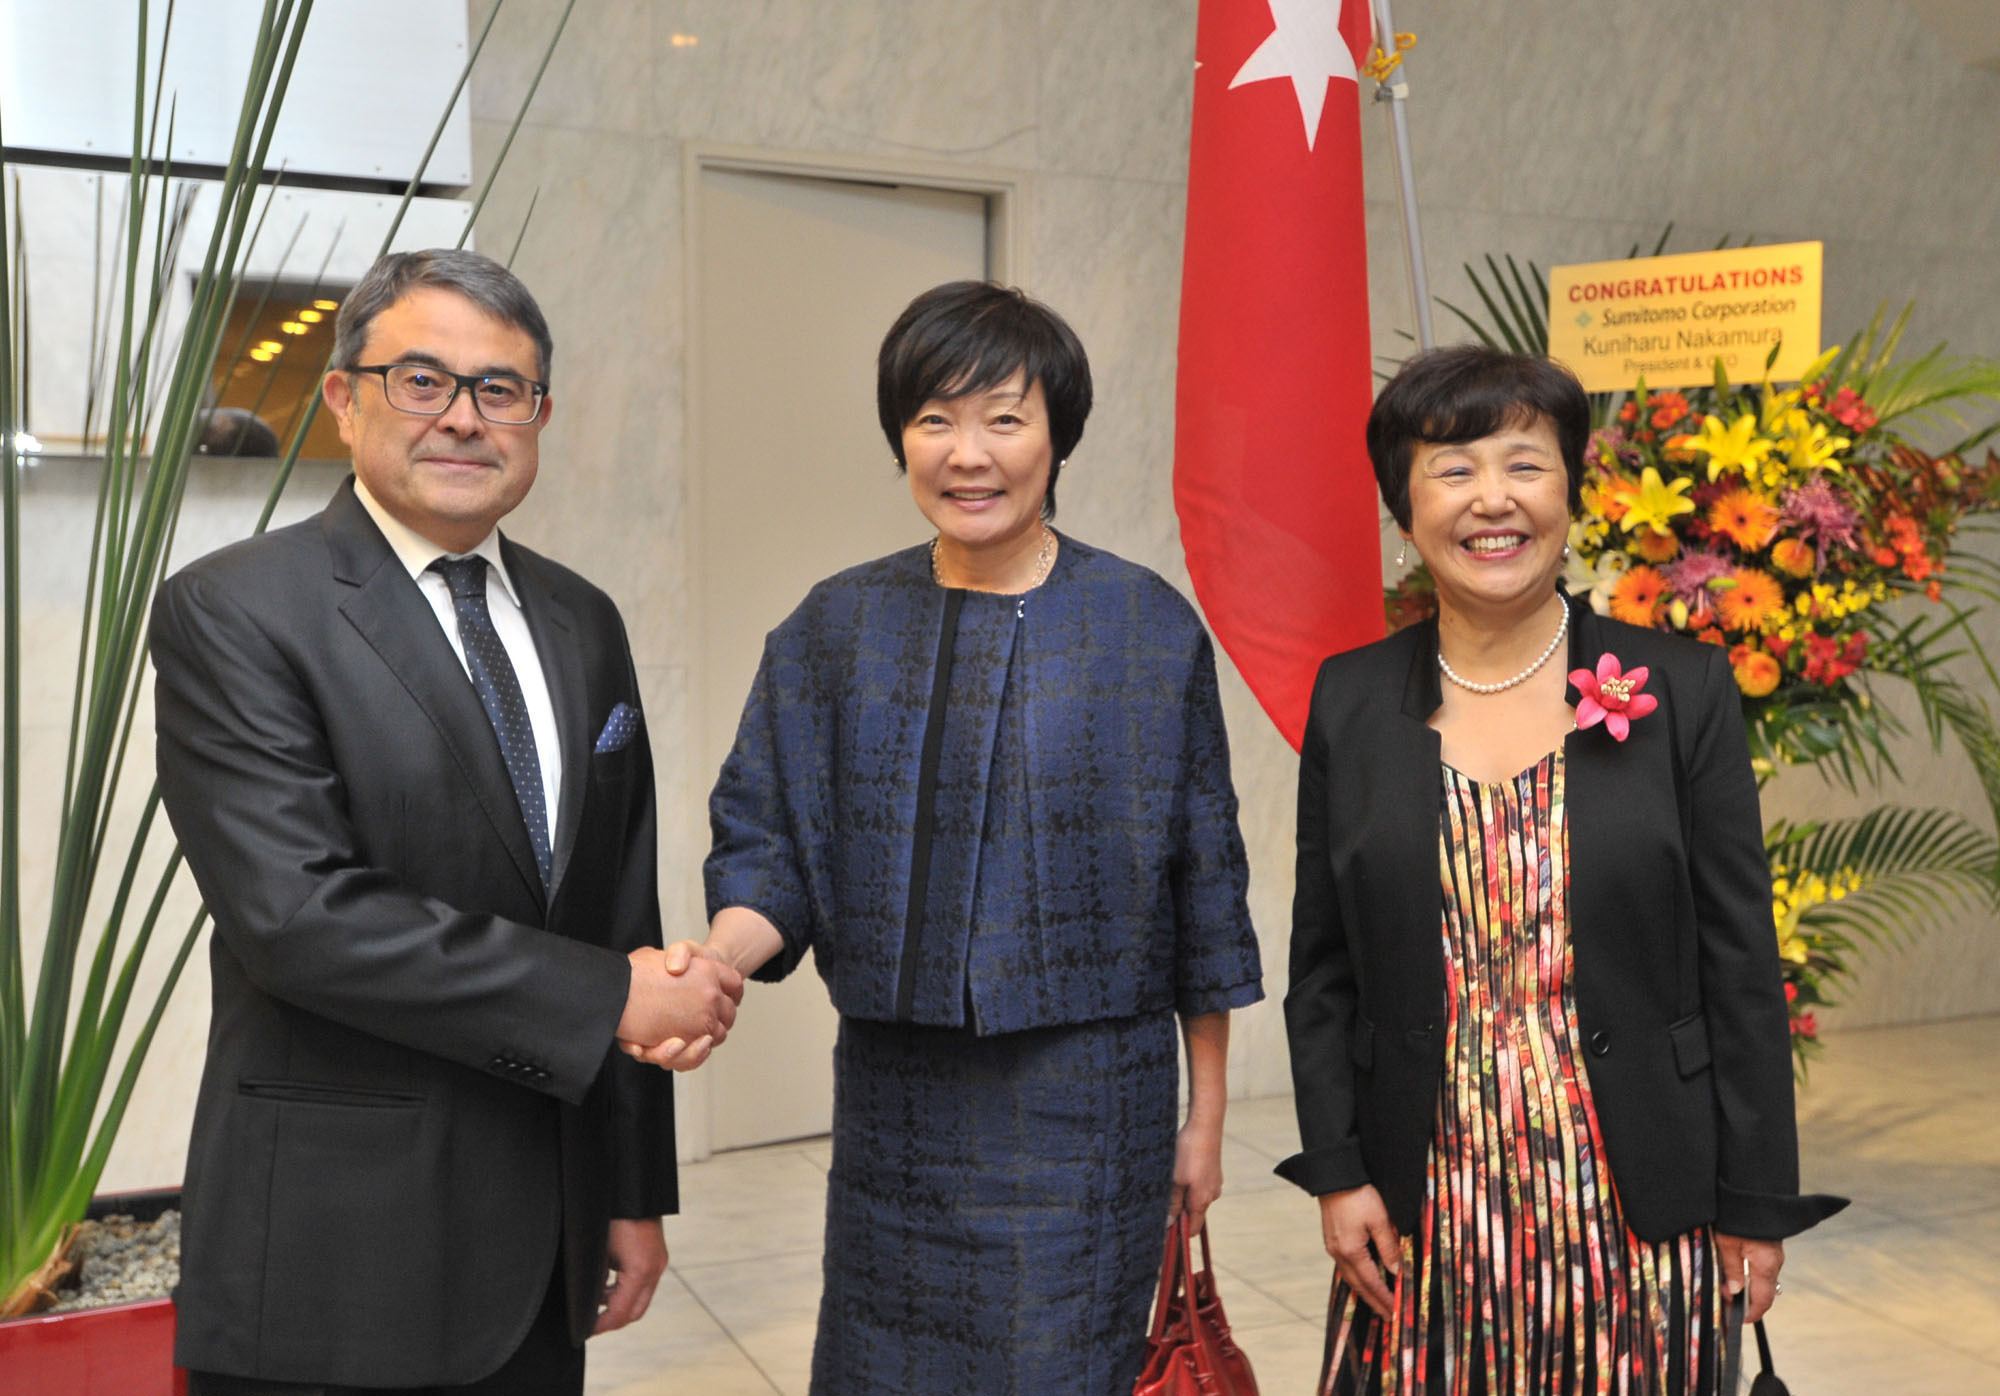 Turkey's Ambassador Bulent Meric (left) and his wife Kumiko (right) pose with first lady Akie Abe during a reception to celebrate the 93rd Turkish National Day at the ambassador's residence in Tokyo on Oct. 28. | YOSHIAKI MIURA